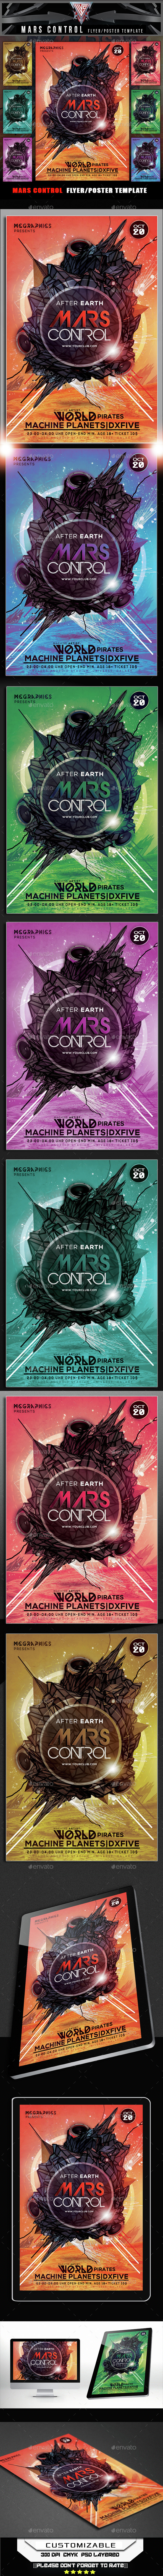 Mars Control Flyer Template - Flyers Print Templates